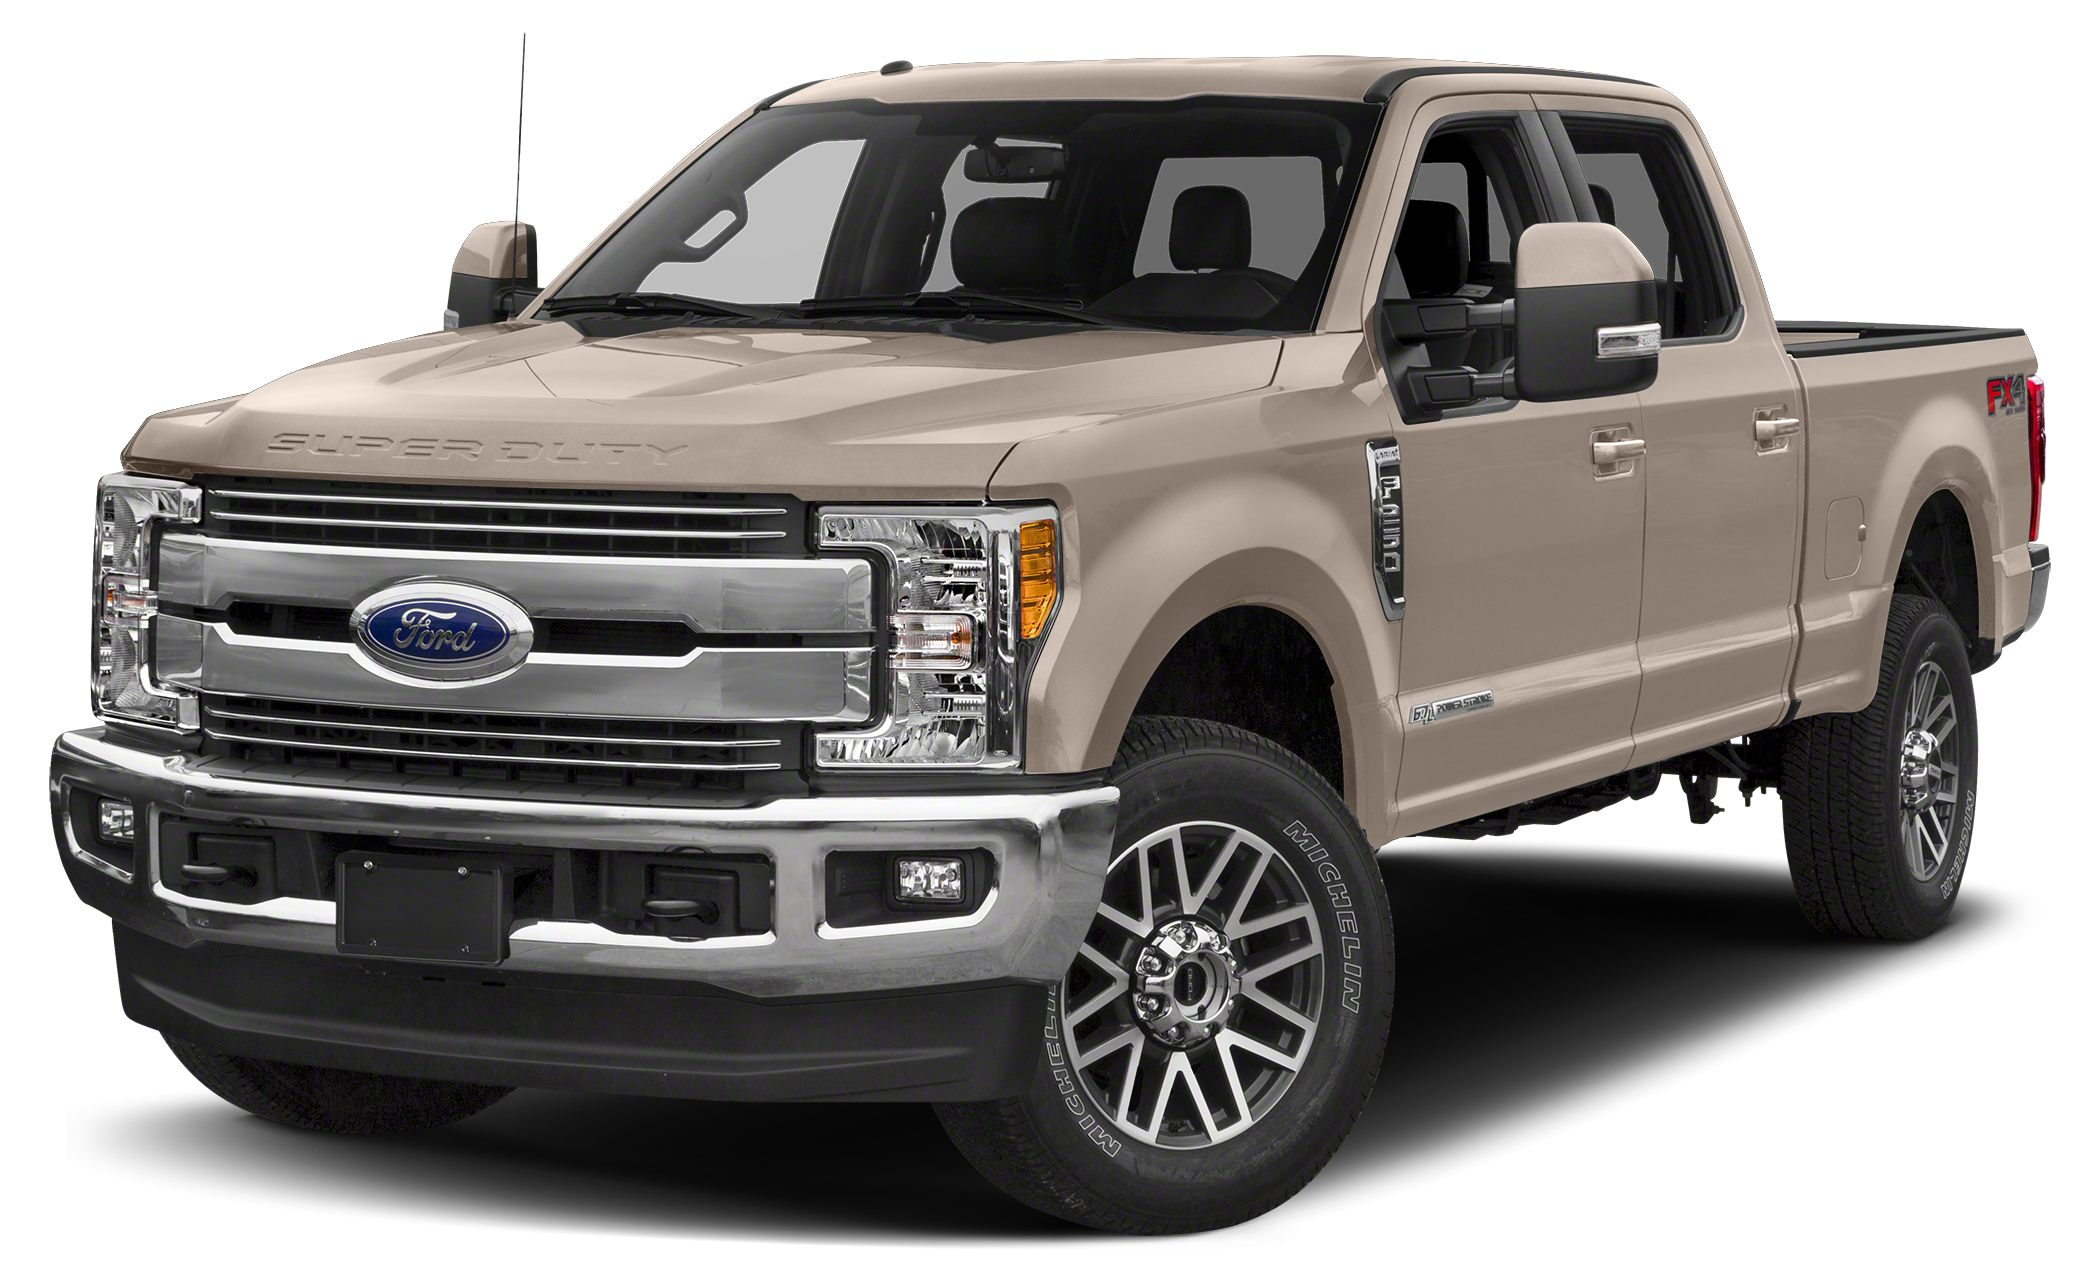 2017 Ford F-250 Lariat Price includes 1500 - Retail Customer Cash Exp 10022017 750 - Ford